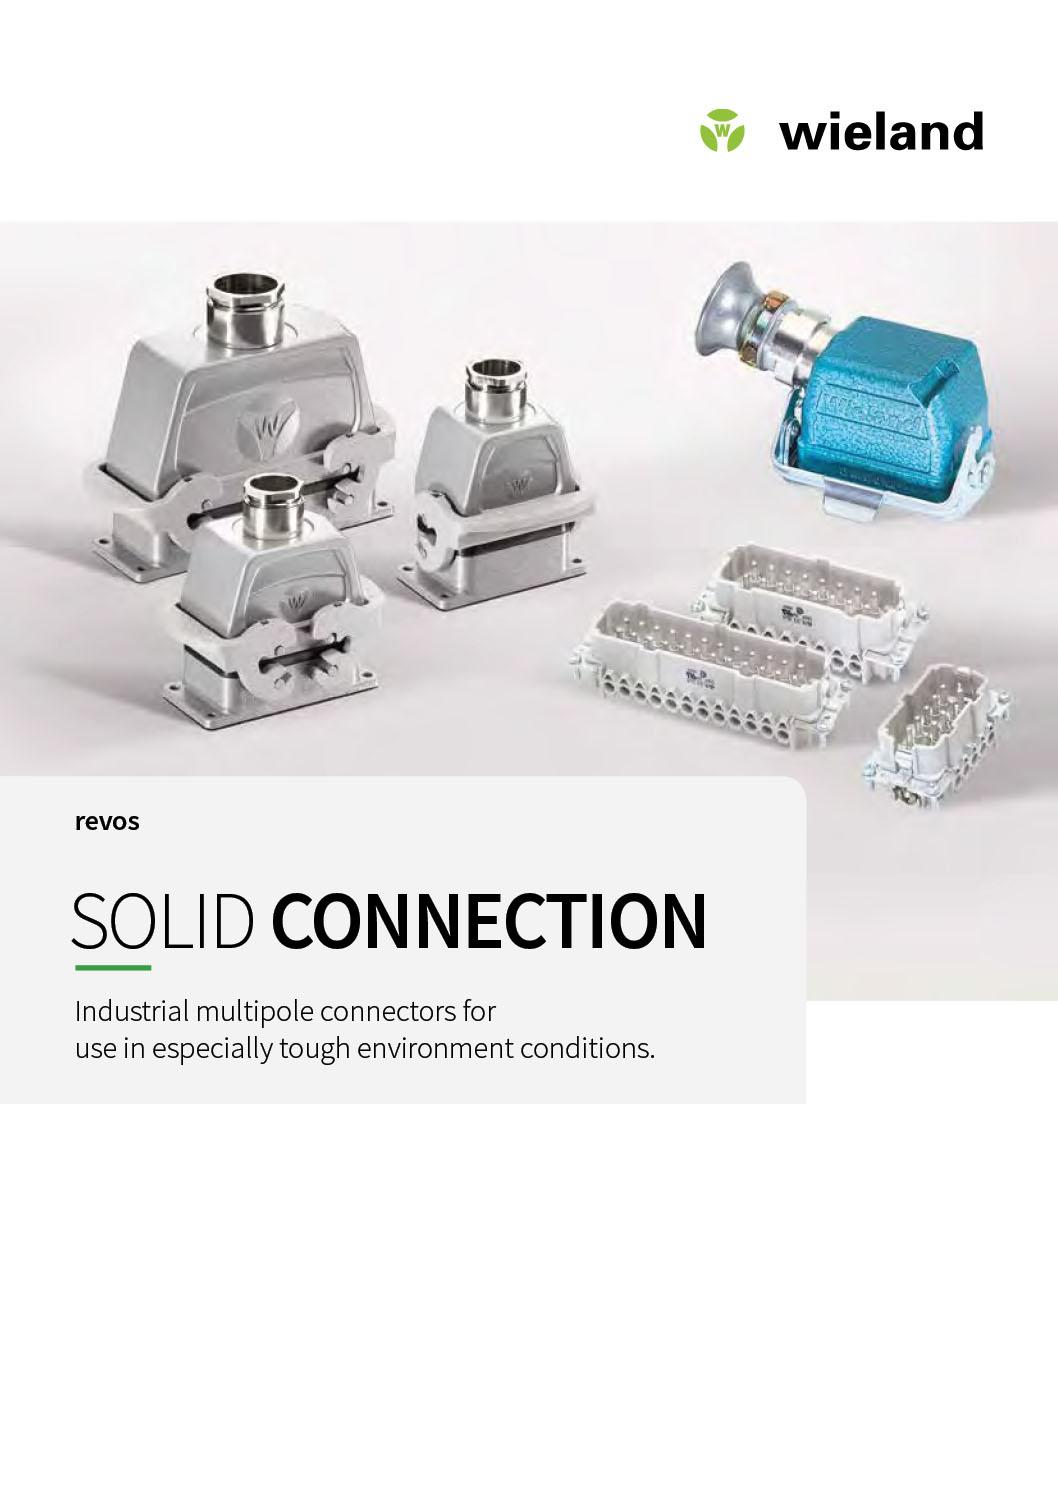 Wieland Solid Connection supplied by ElectroMechanica